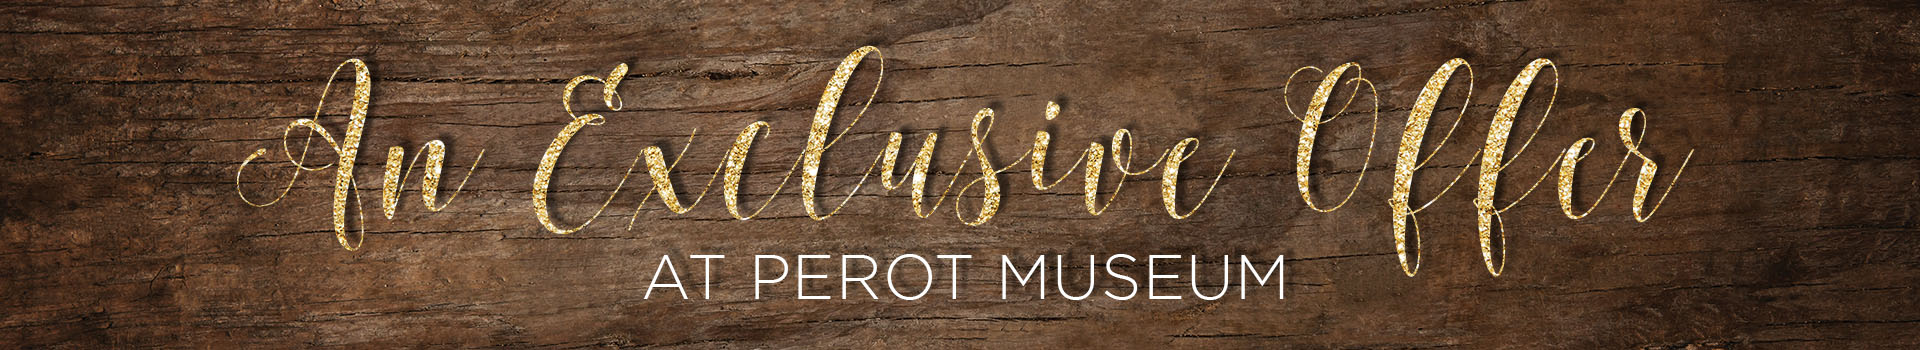 perotmuseum_wp_exclusive offer banner